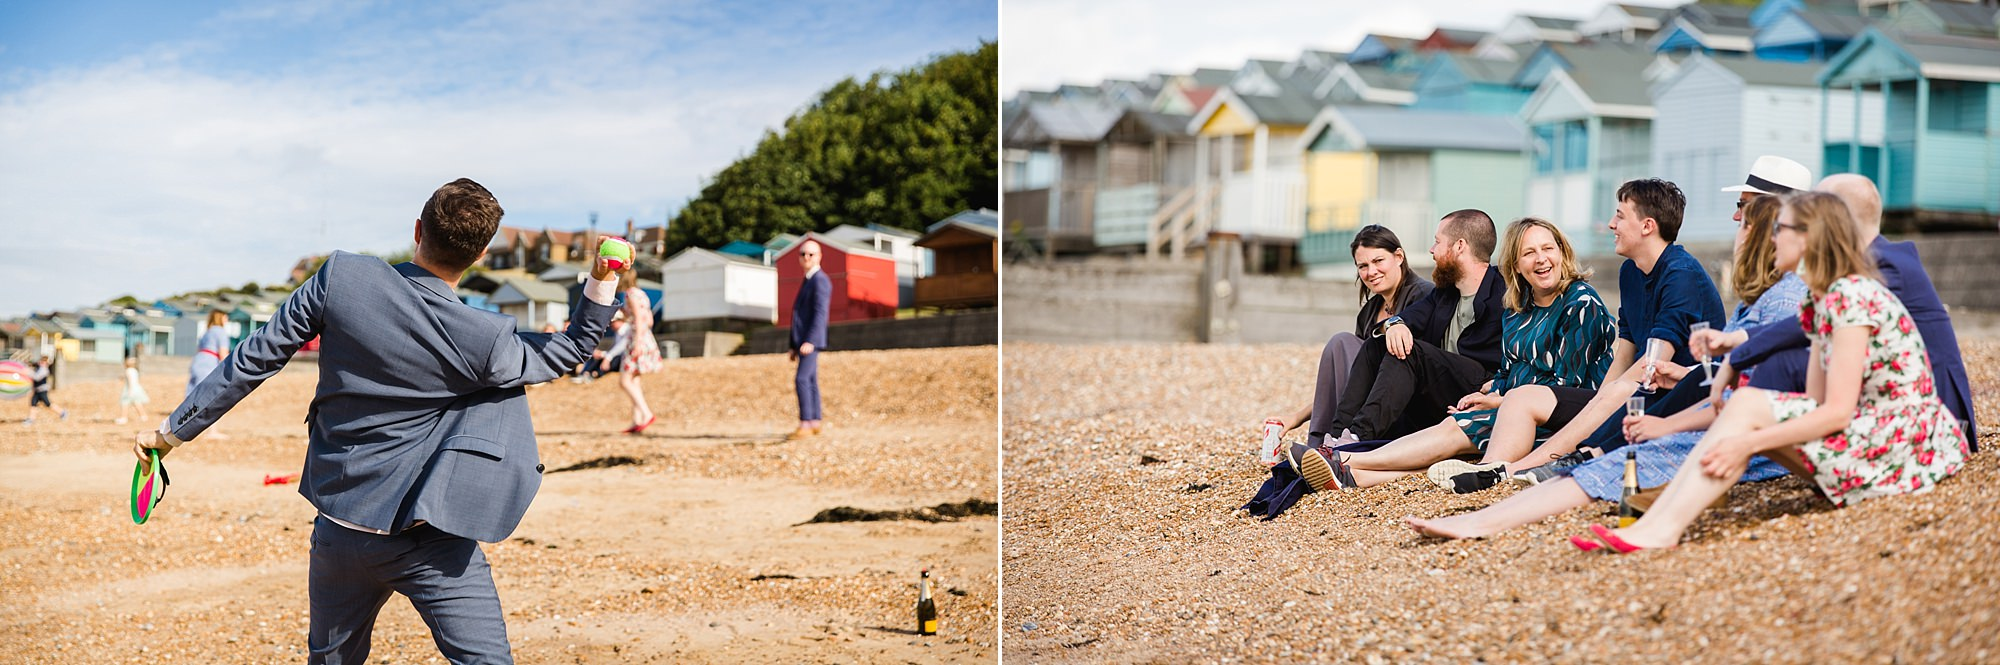 Beacon House wedding guests play games on the beach